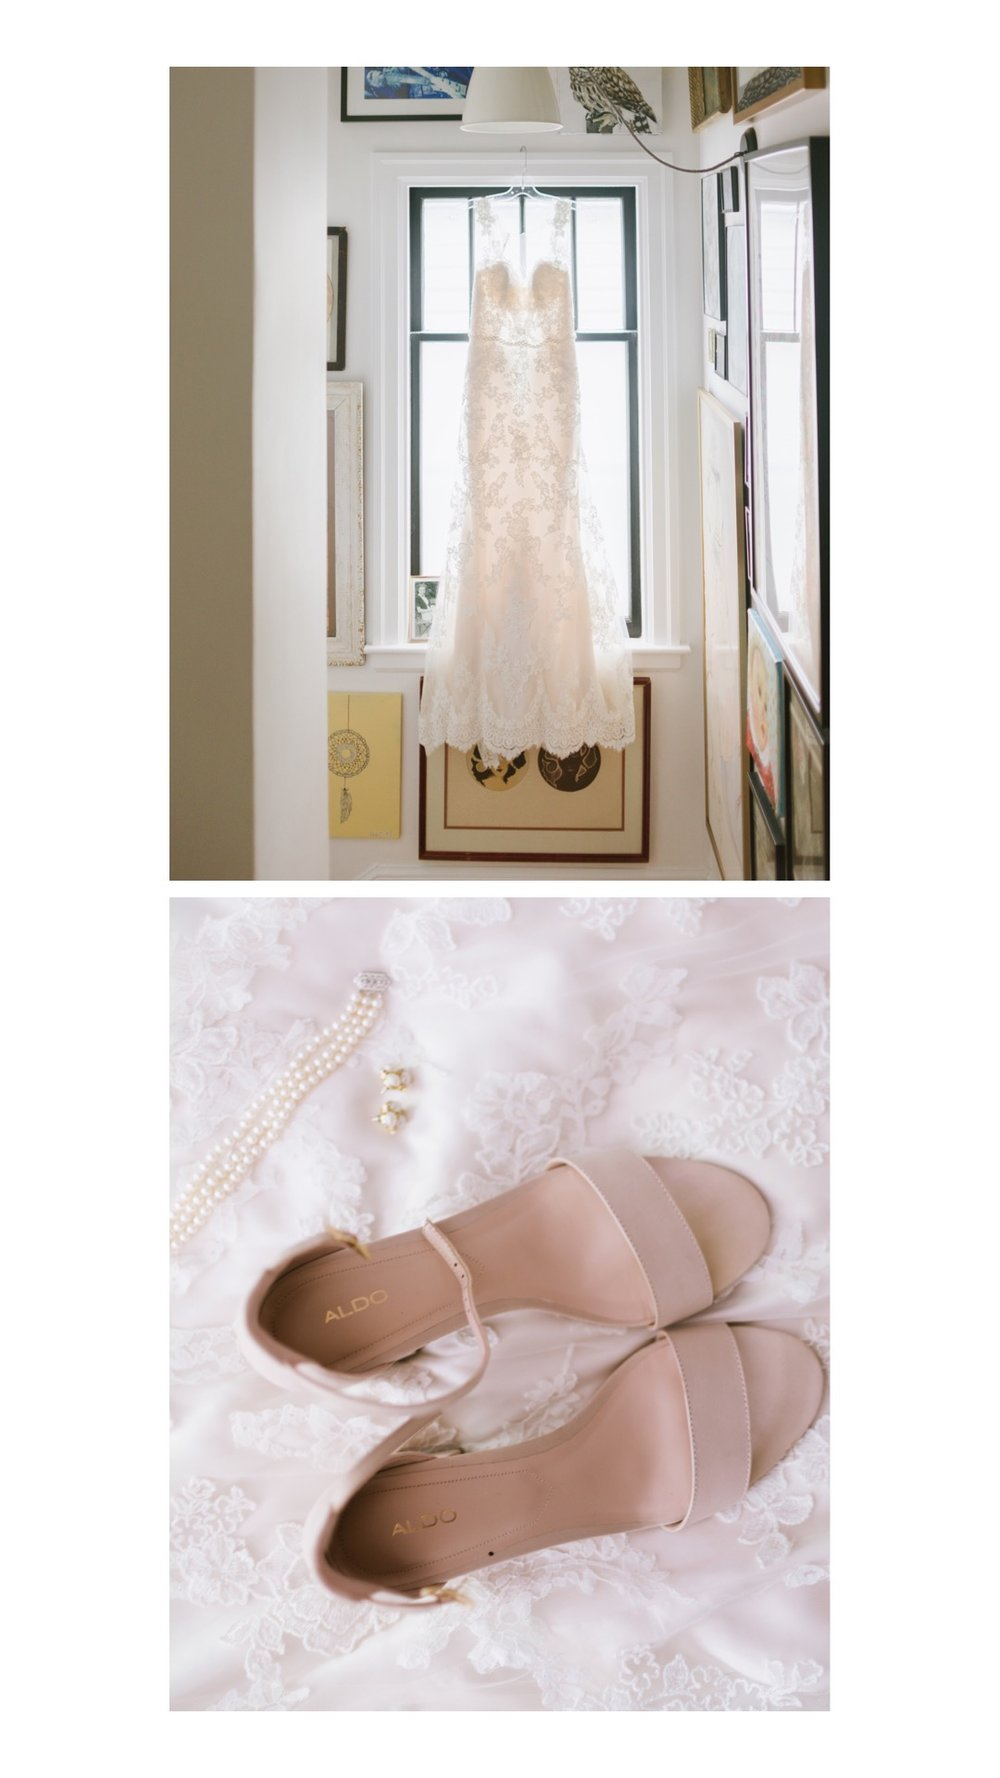 Martina & Scott Halifax Wedding Photographer - Sinead Dubeau Photography 01